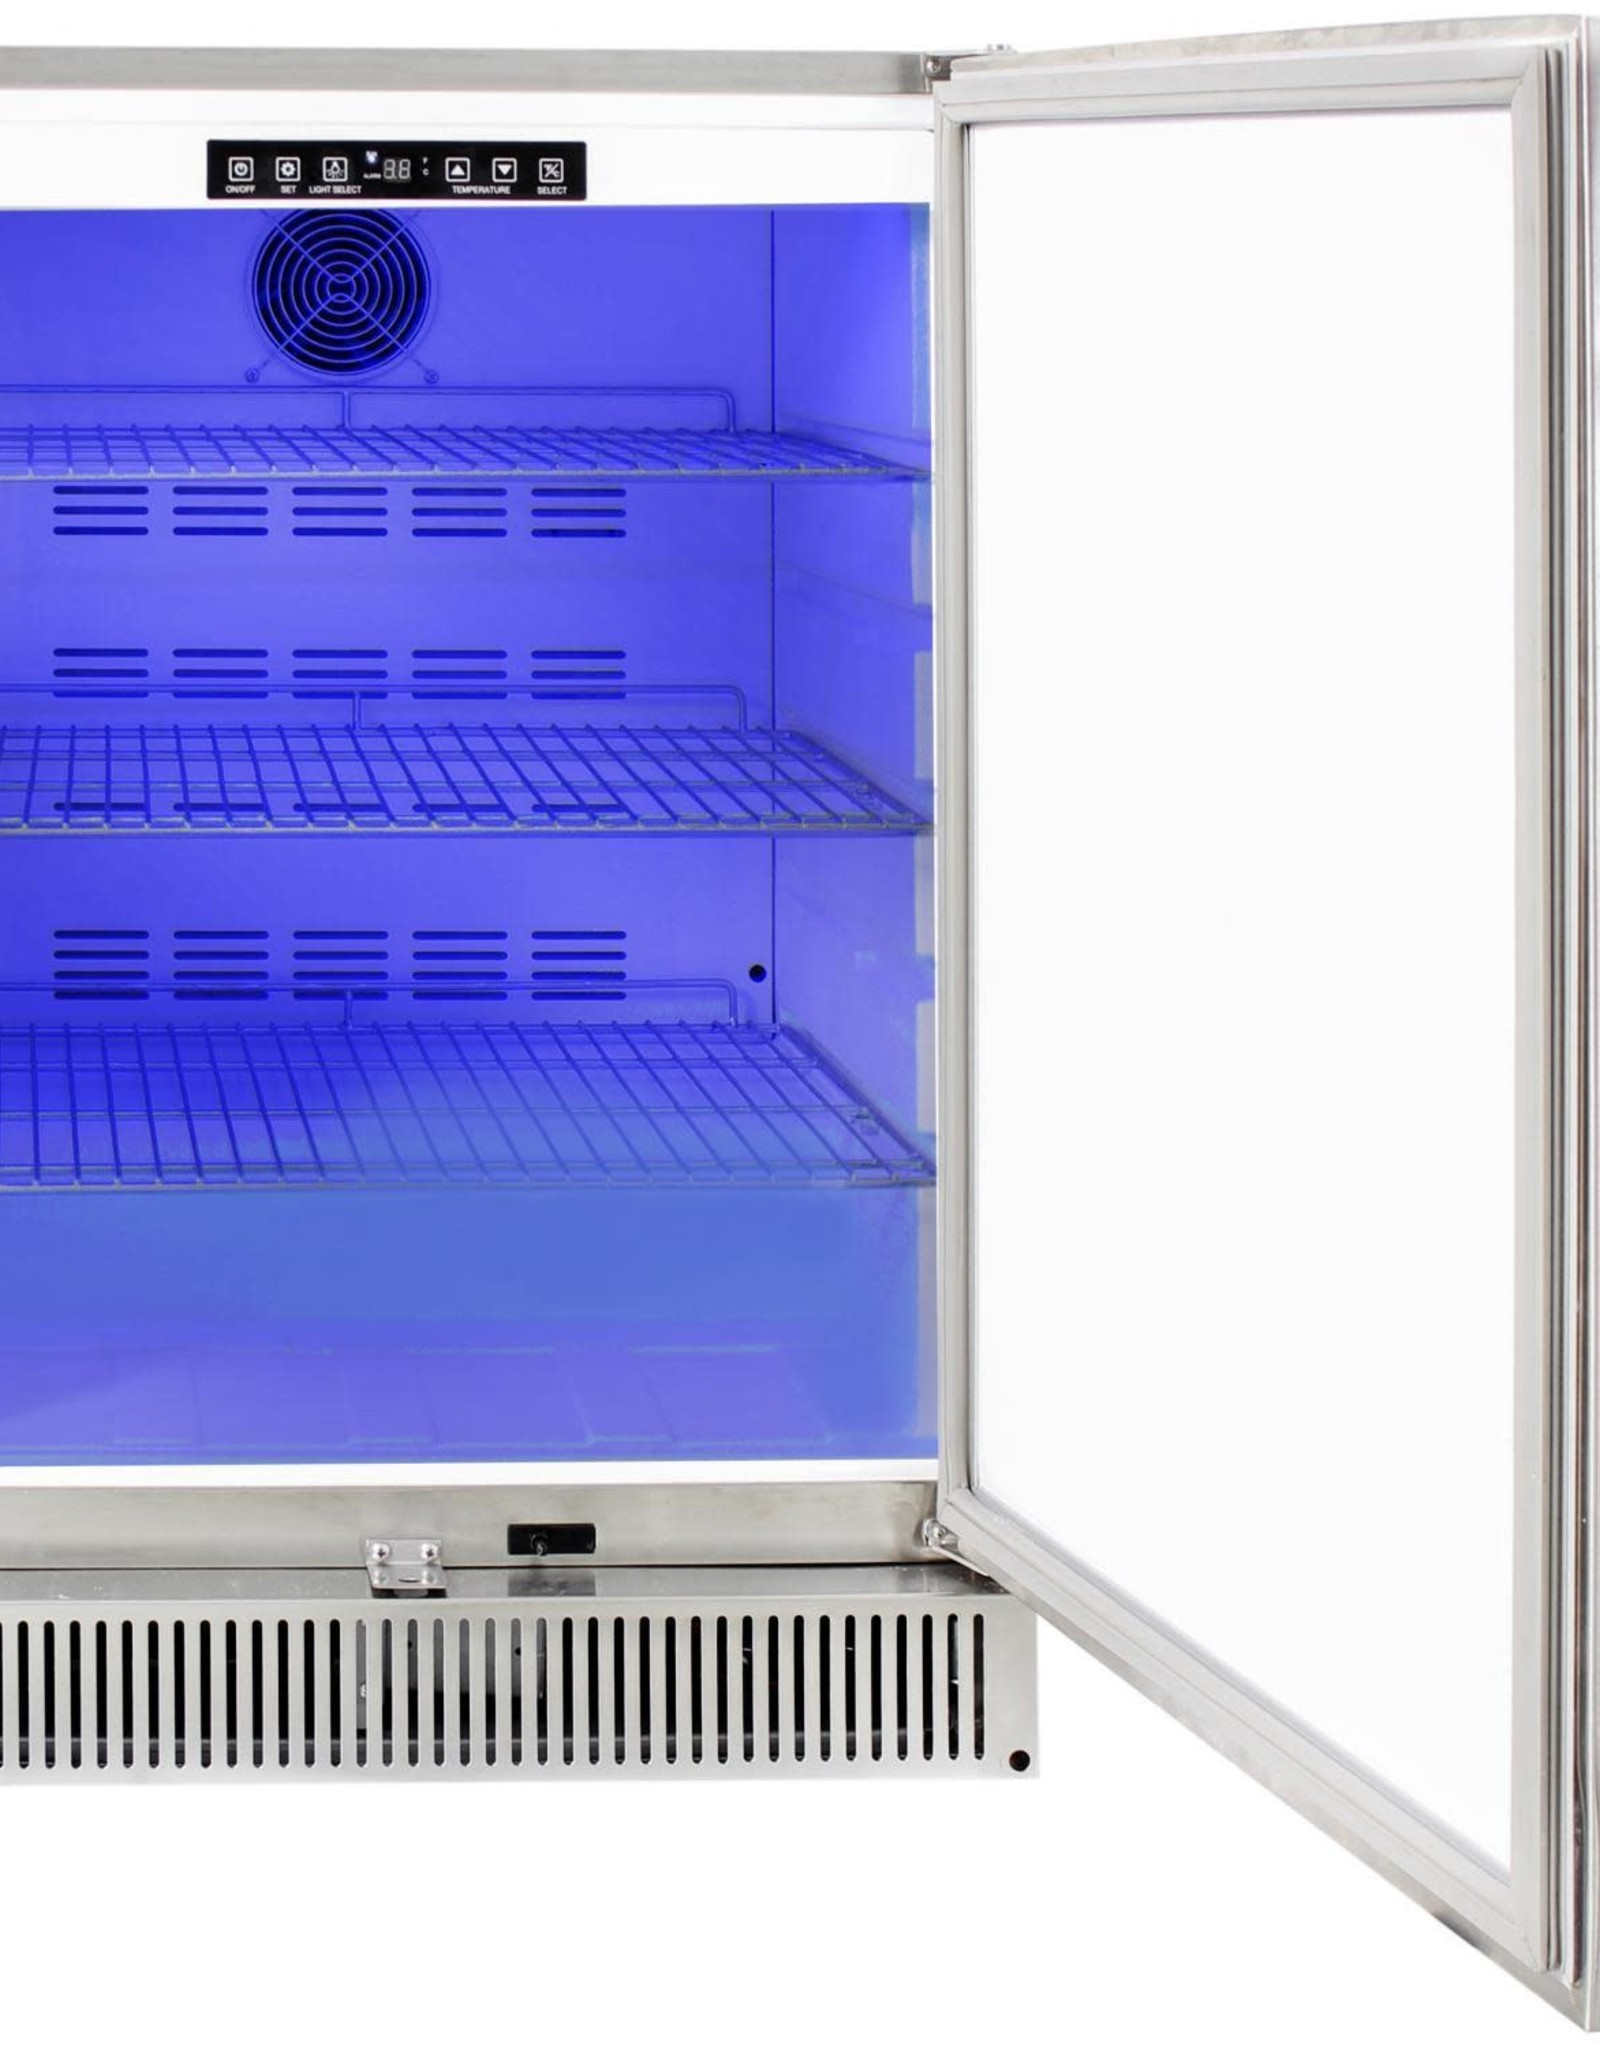 Blaze Outdoor Products Blaze 24-Inch 5.2 Cu. Ft. Outdoor Rated Compact Stainless Refrigerator - BLZ-SSRF-50DH